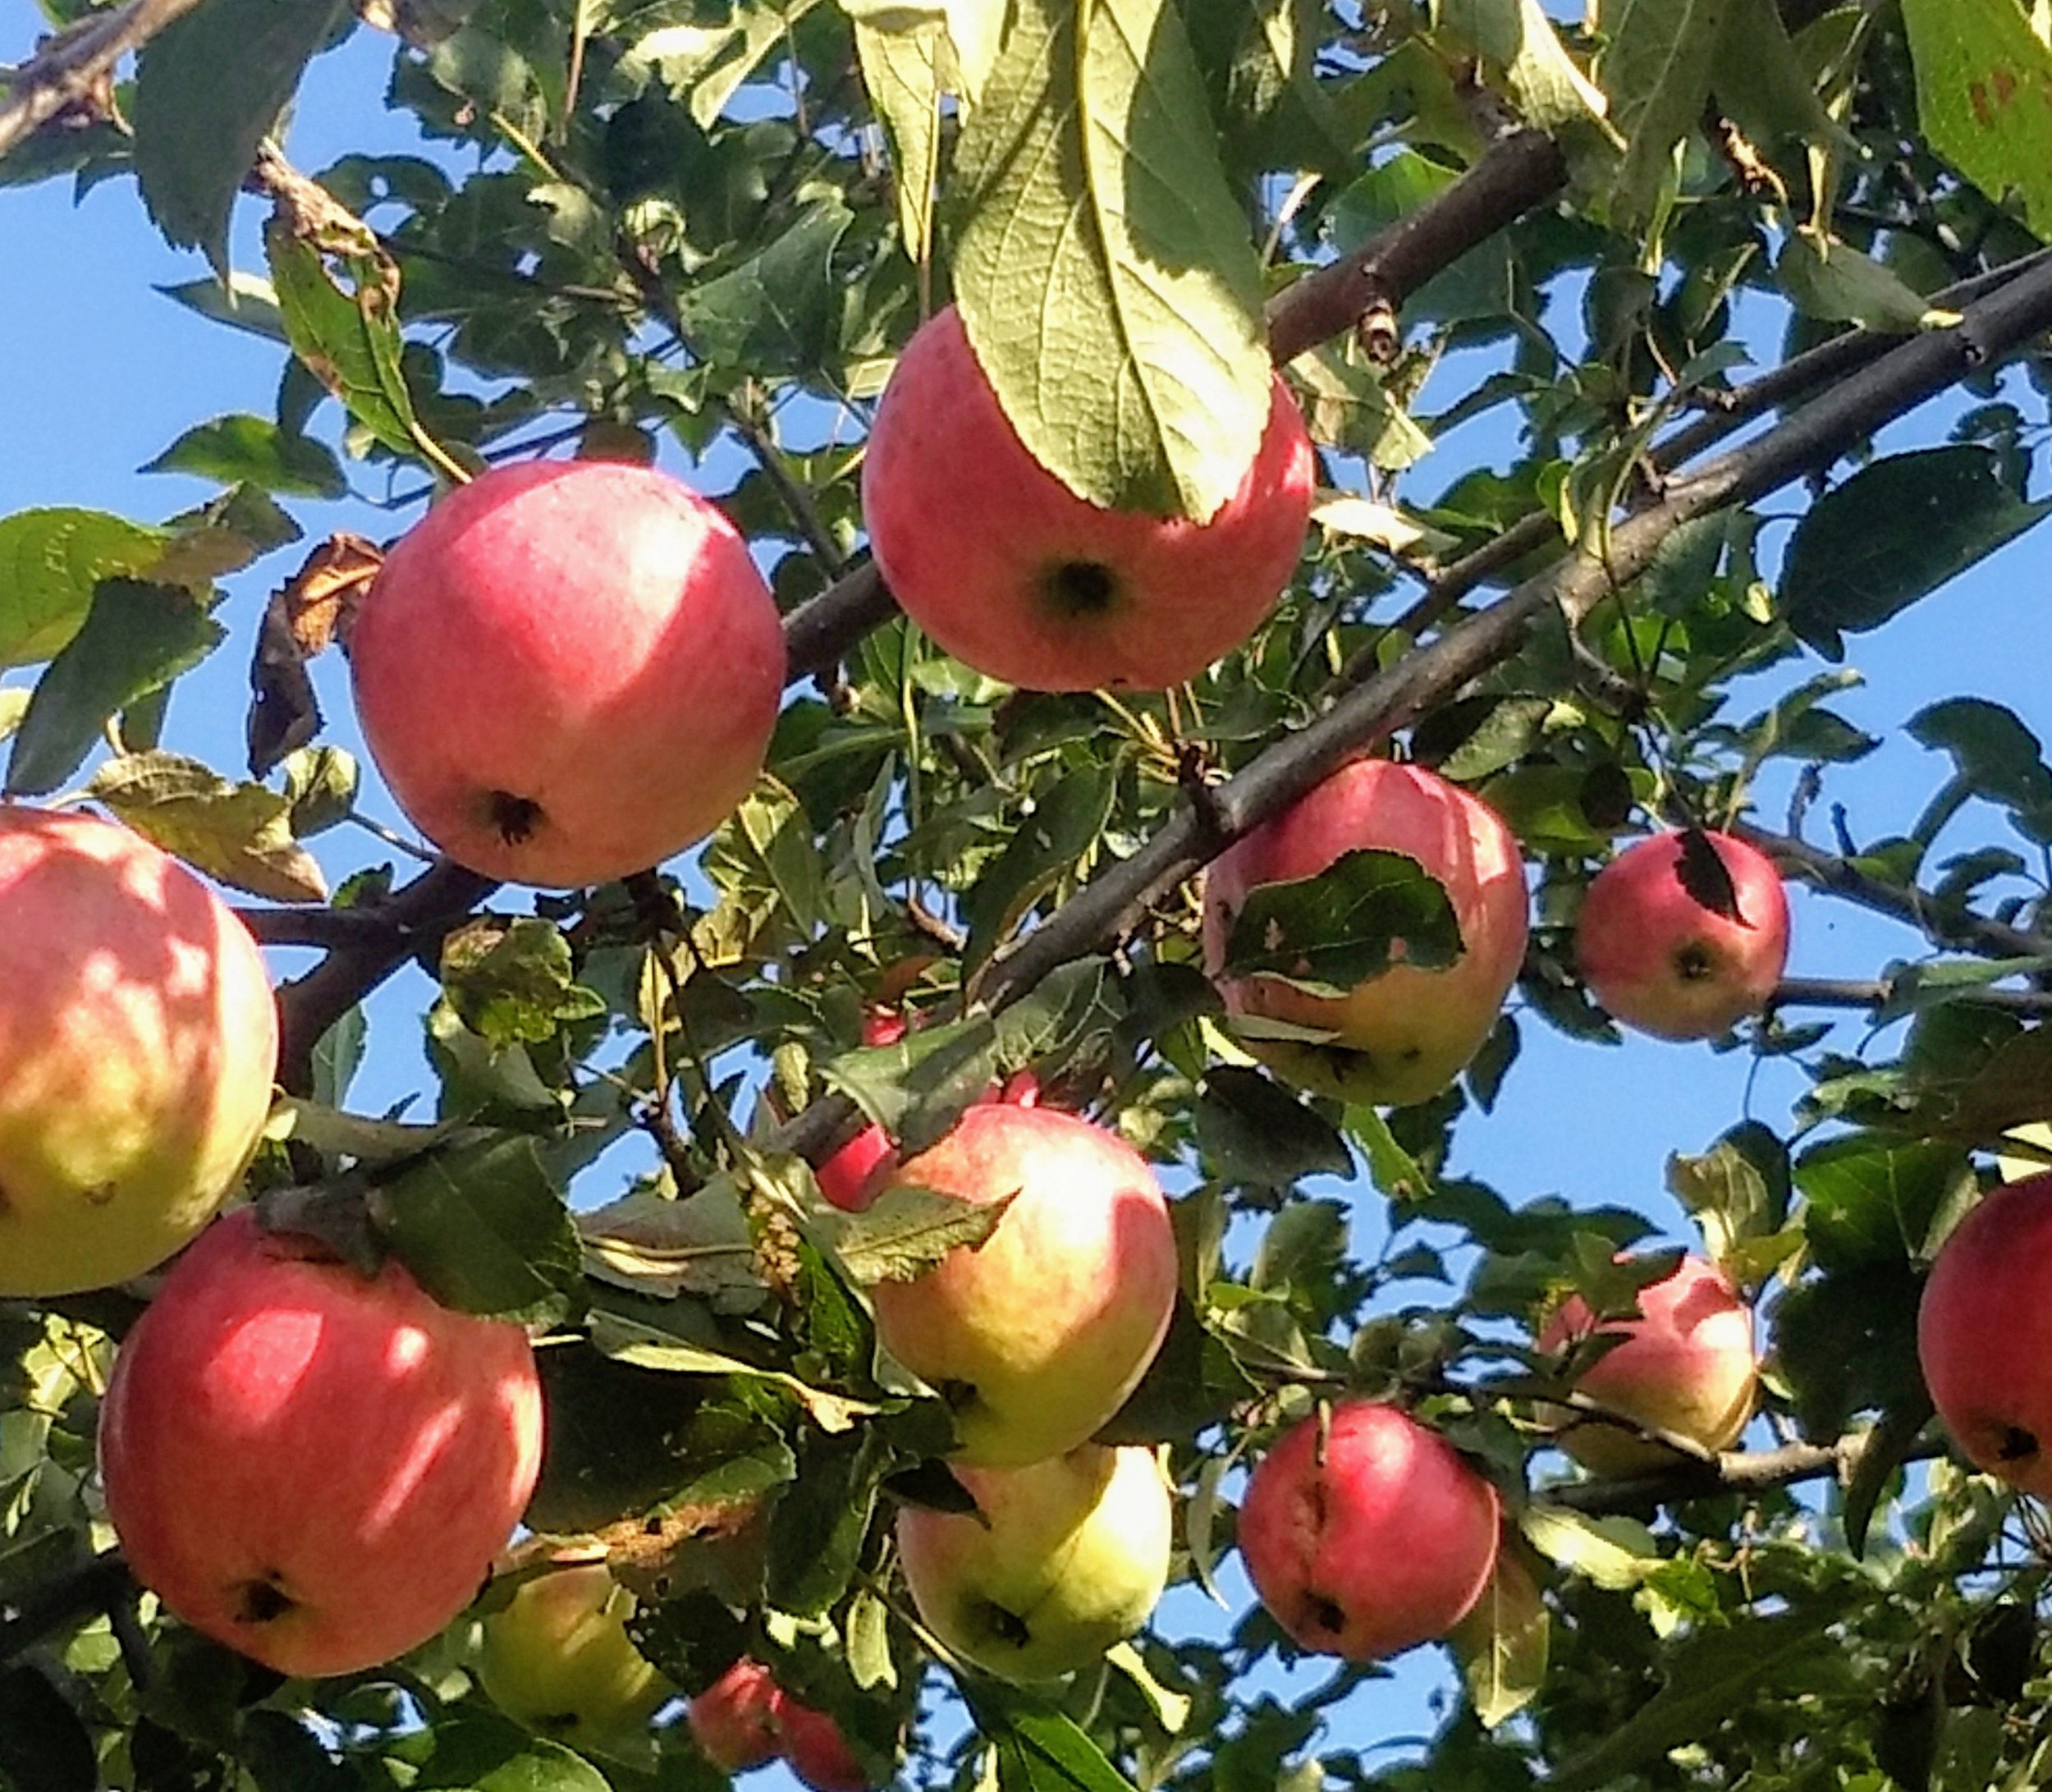 Backyard Apples.jpg